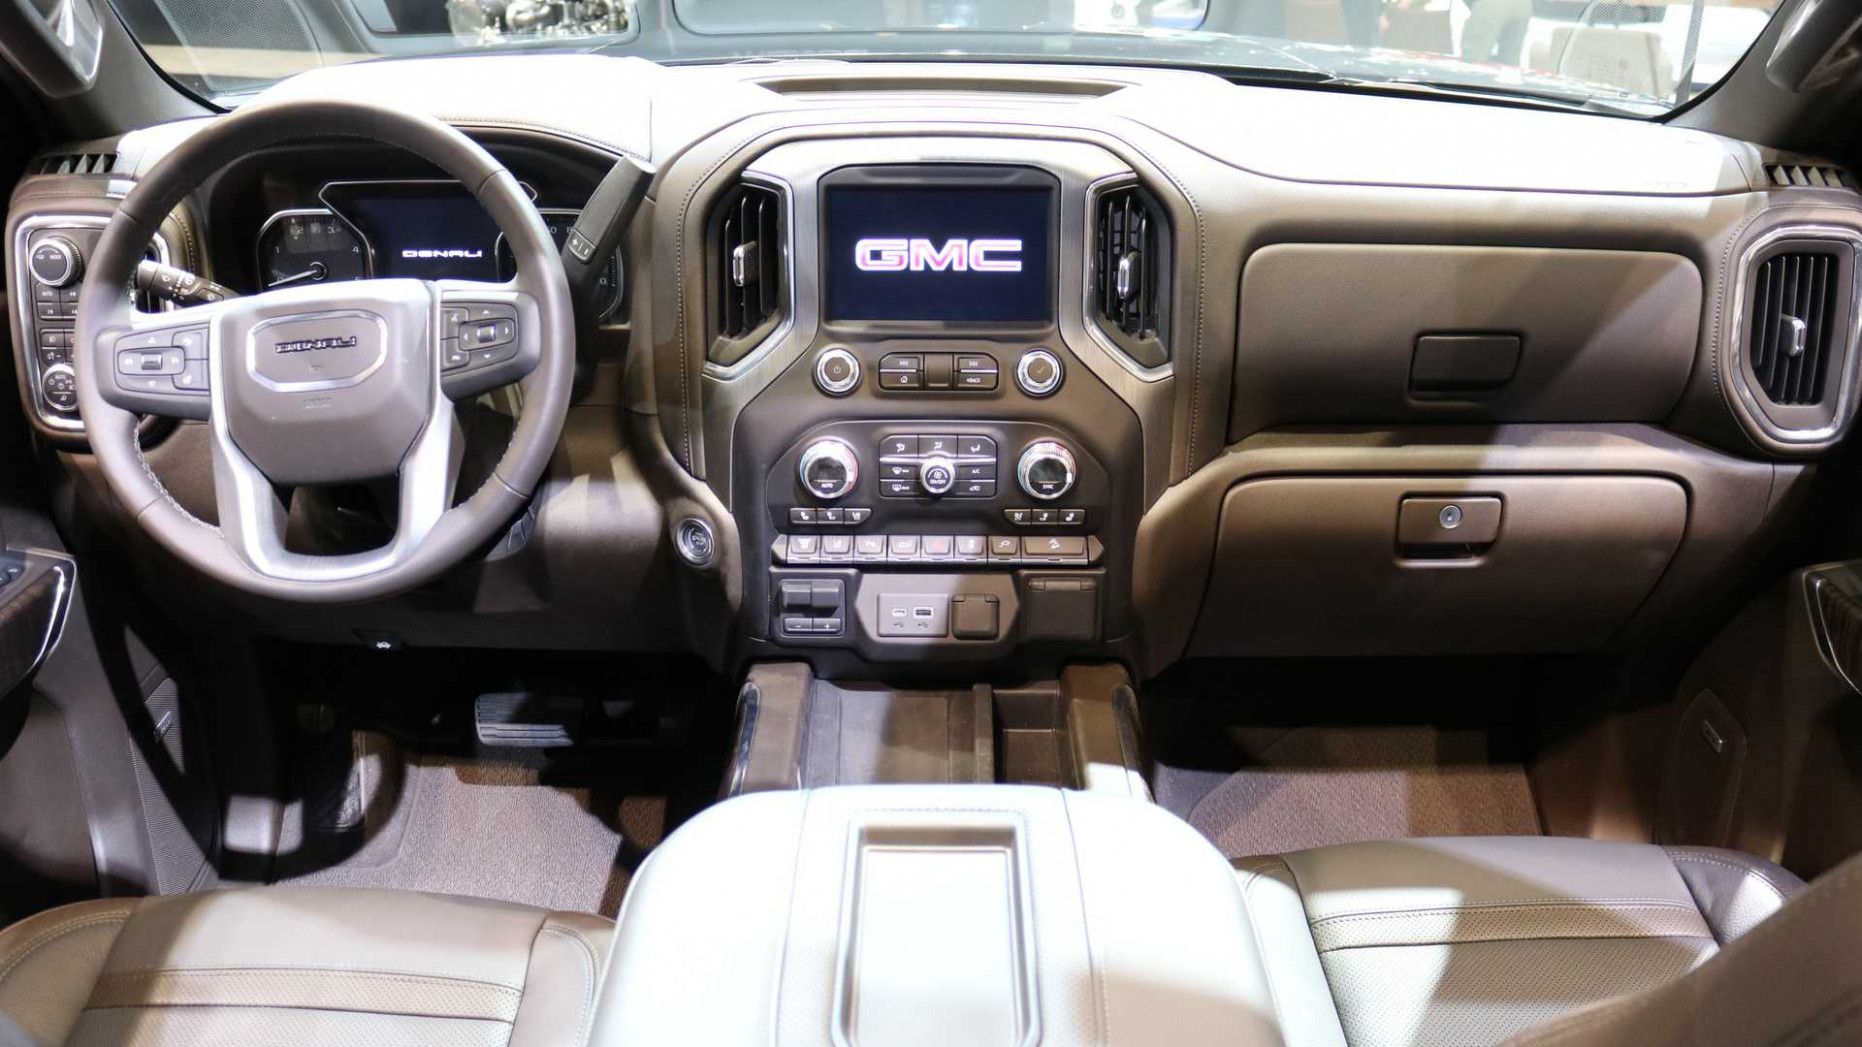 2020 Gmc Sierra Interior Concept And Review In 2020 Gmc Sierra